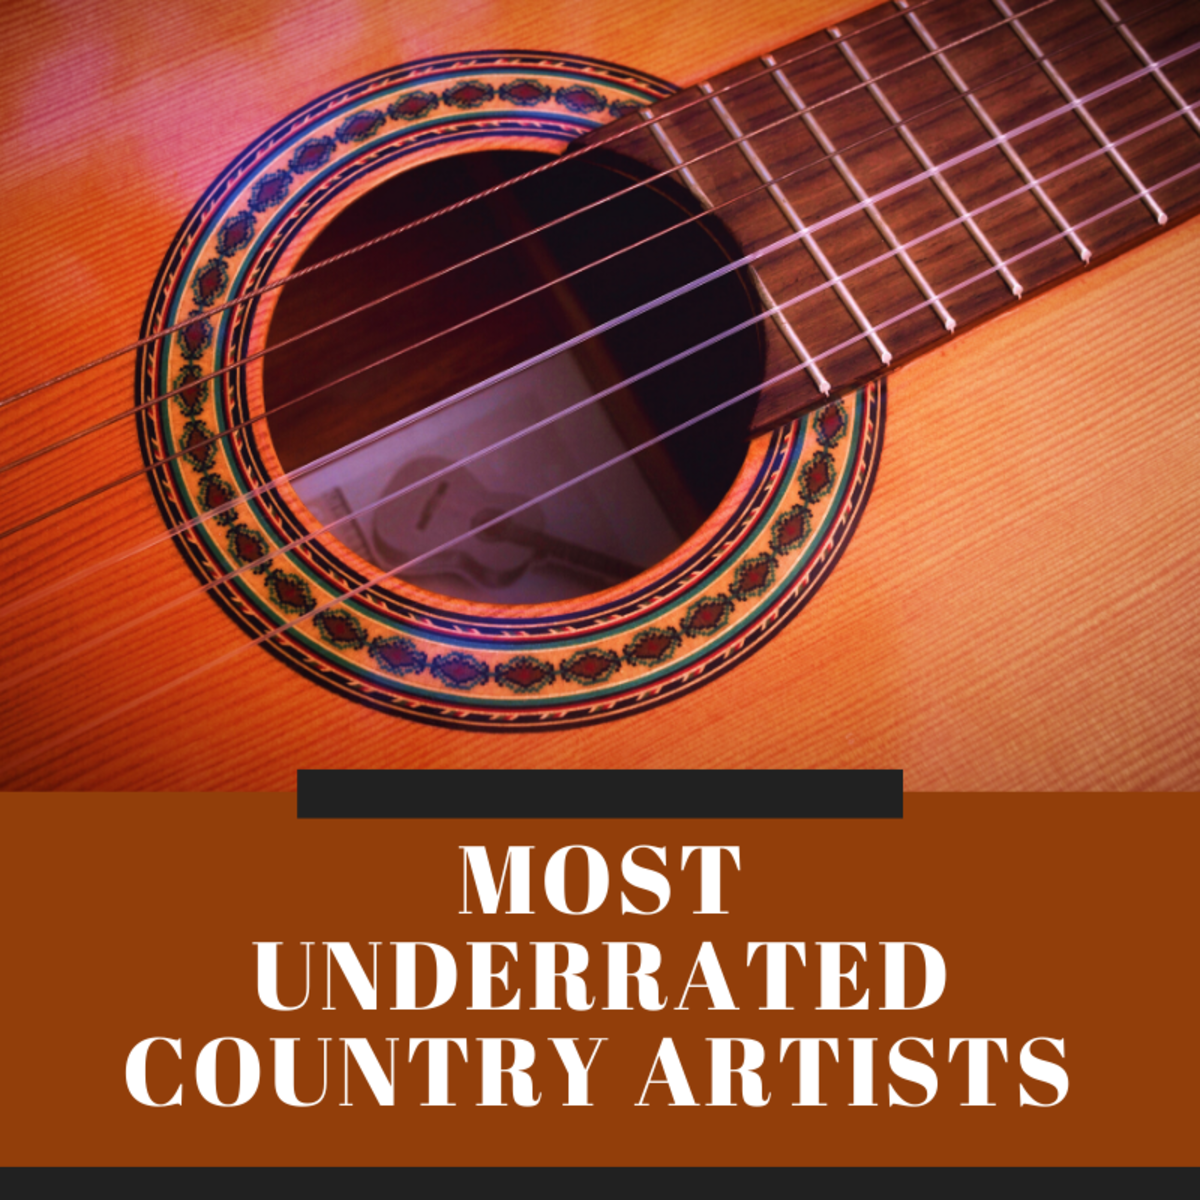 Top 10 Most Underrated Country Artists of Today